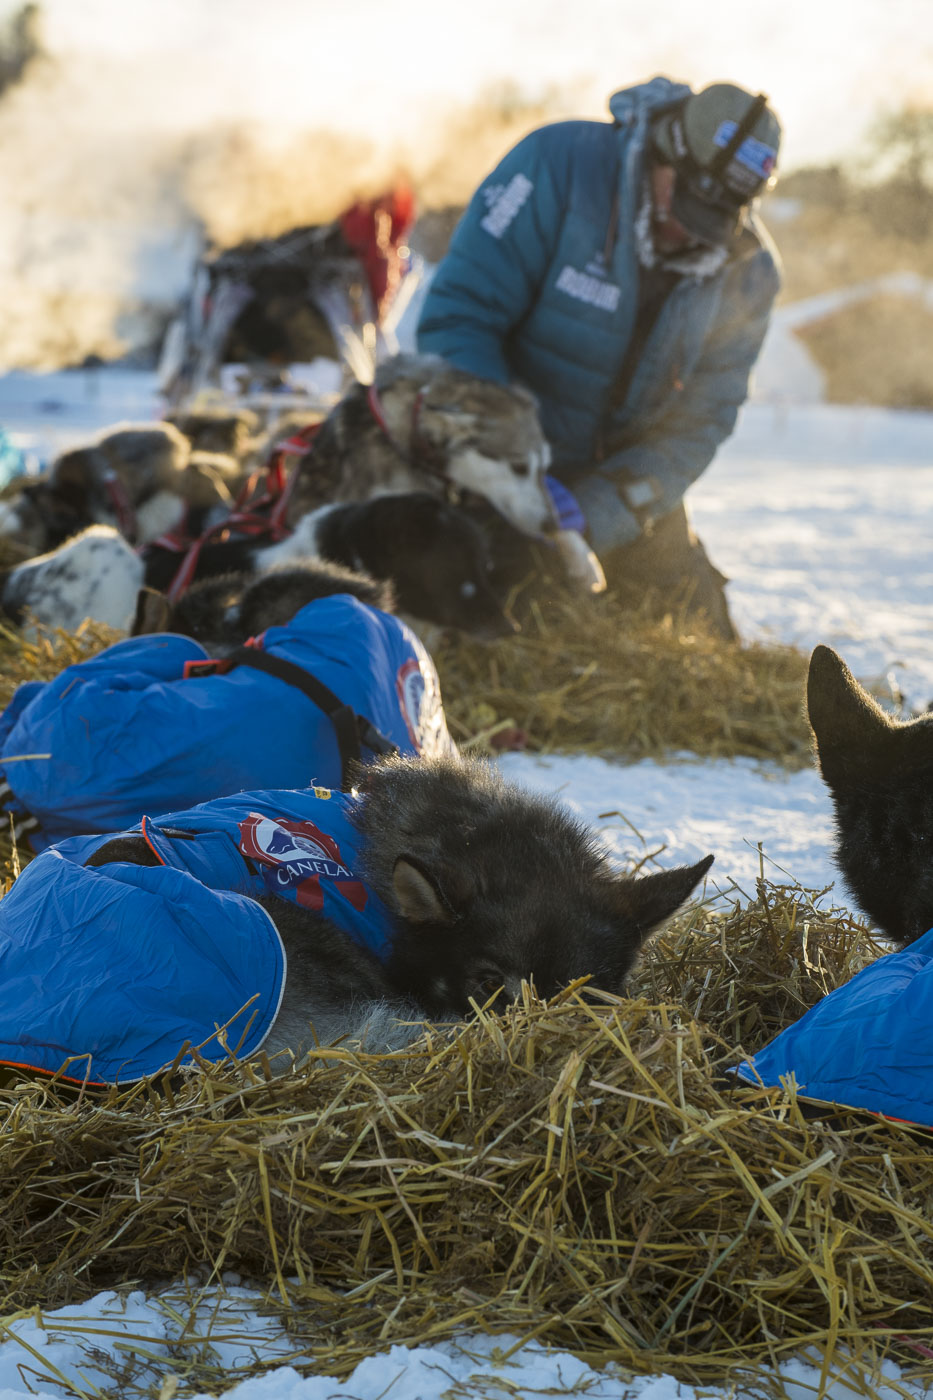 Petter Karlsson checks paws and legs for injuries during a rest at the Neiden 2 checkpoint for the 2019 Finnmarksløpet race.